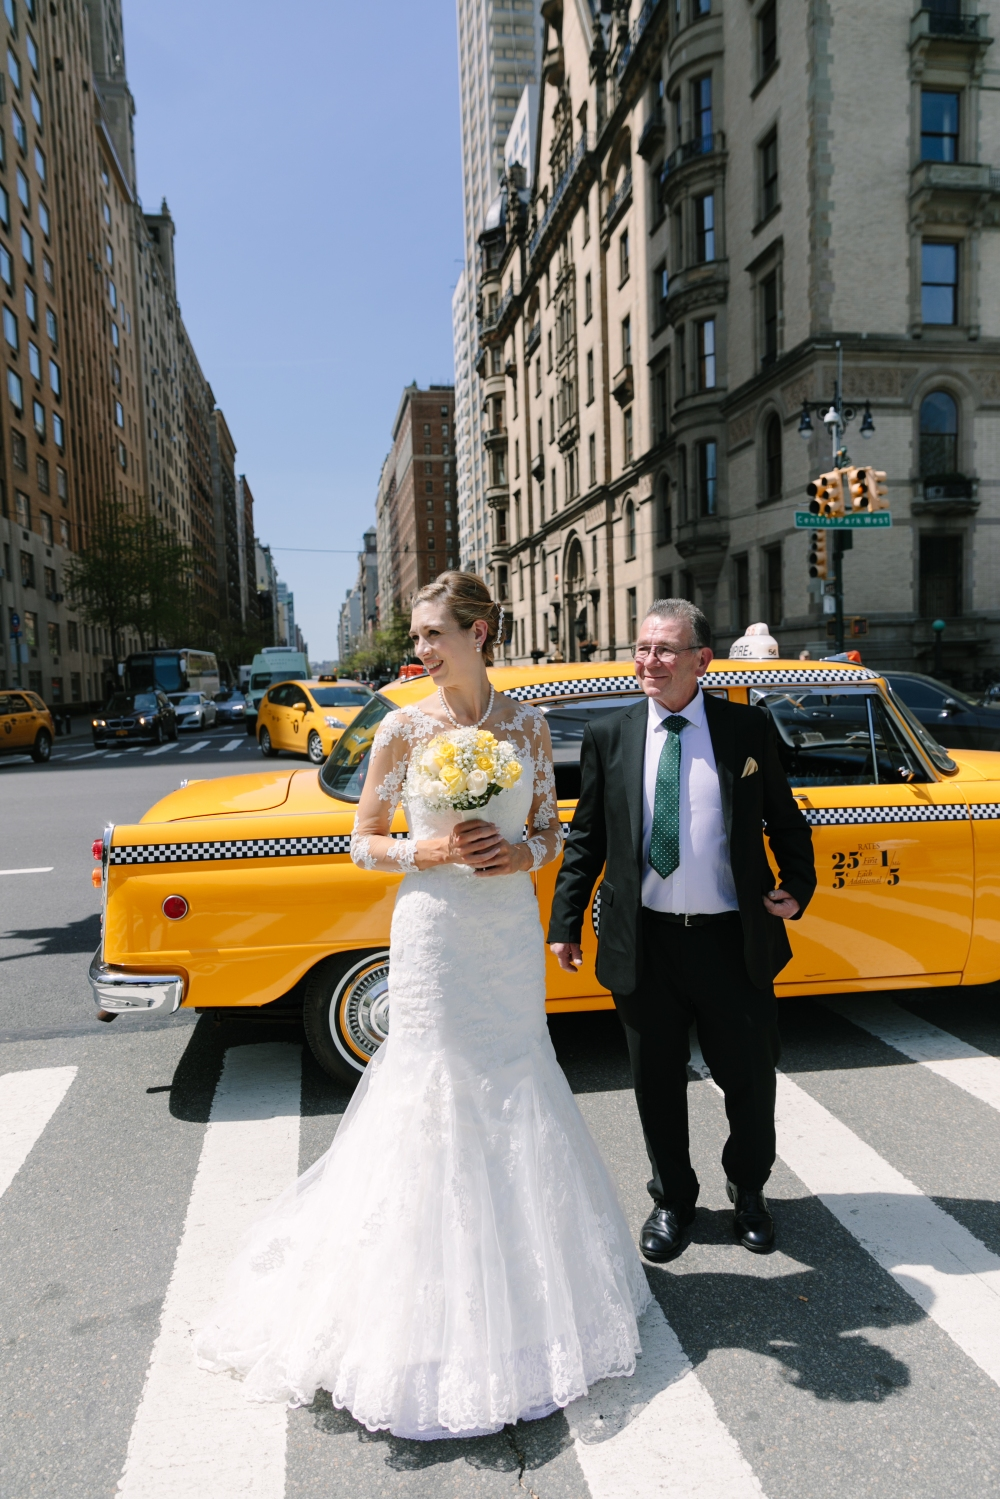 Wagner-cove-central-park-wedding-SS-11